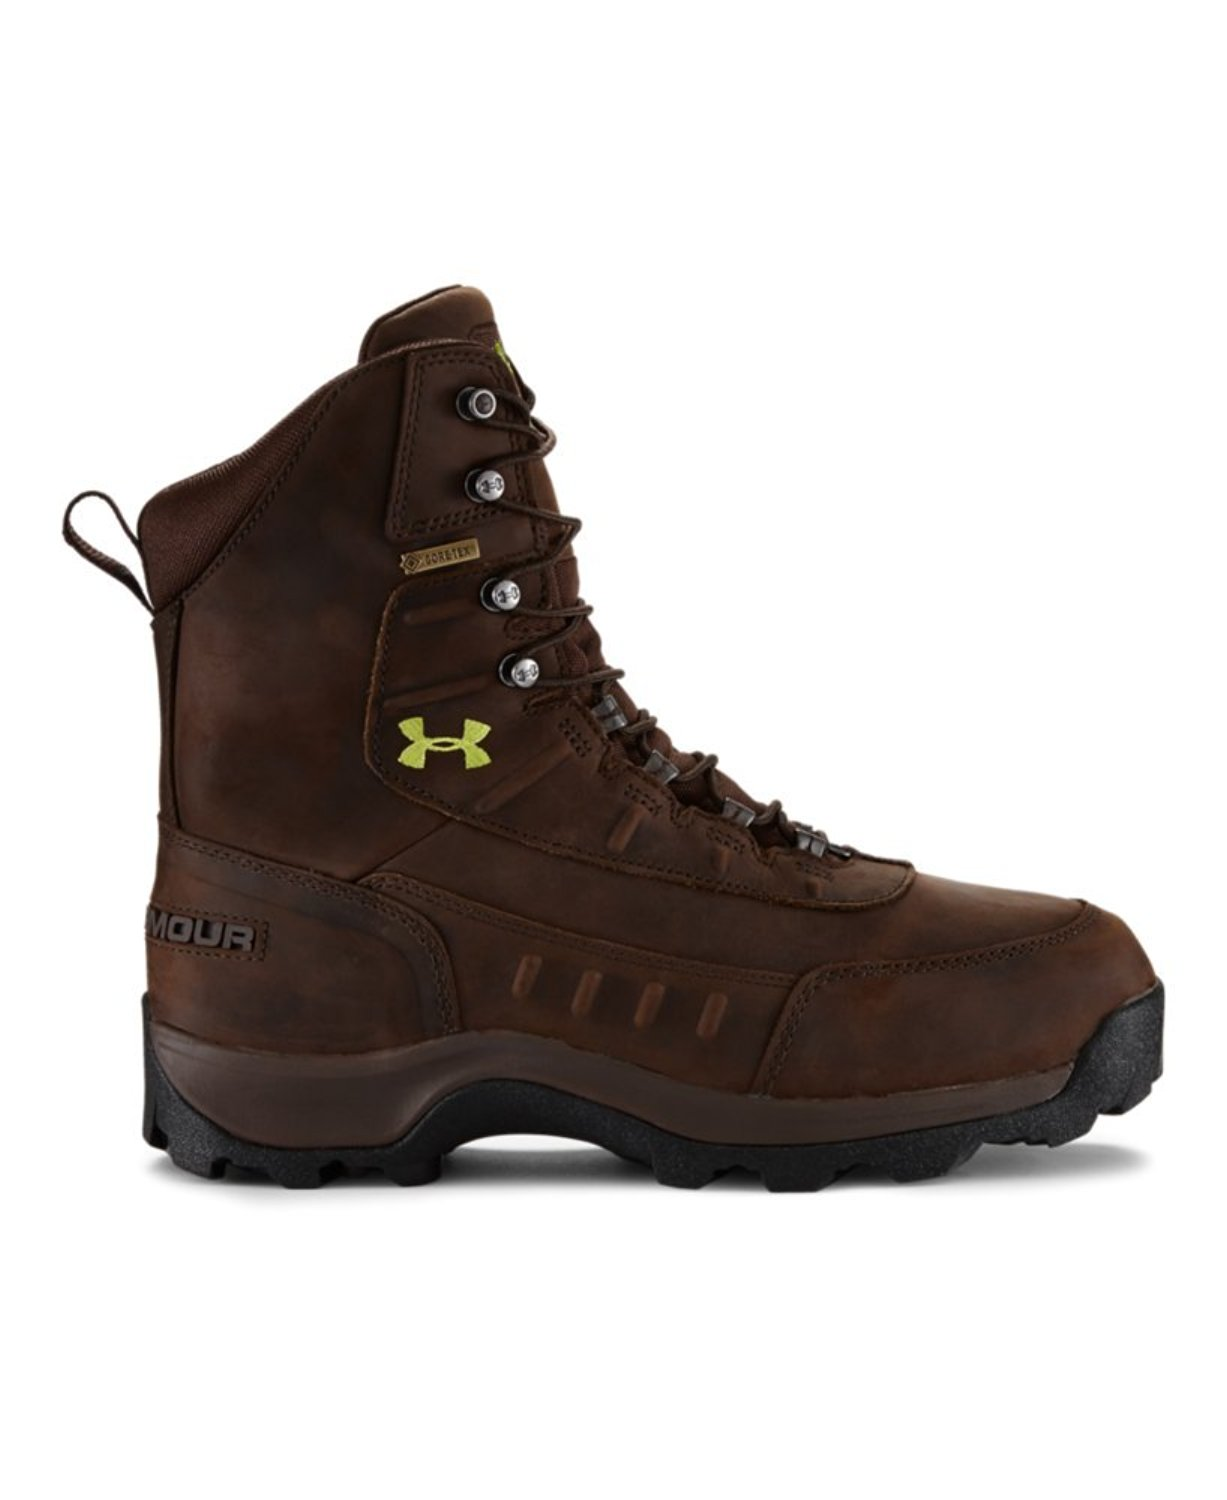 4cf2d7d8 Cheap Under Armour Hunting Boots, find Under Armour Hunting Boots ...